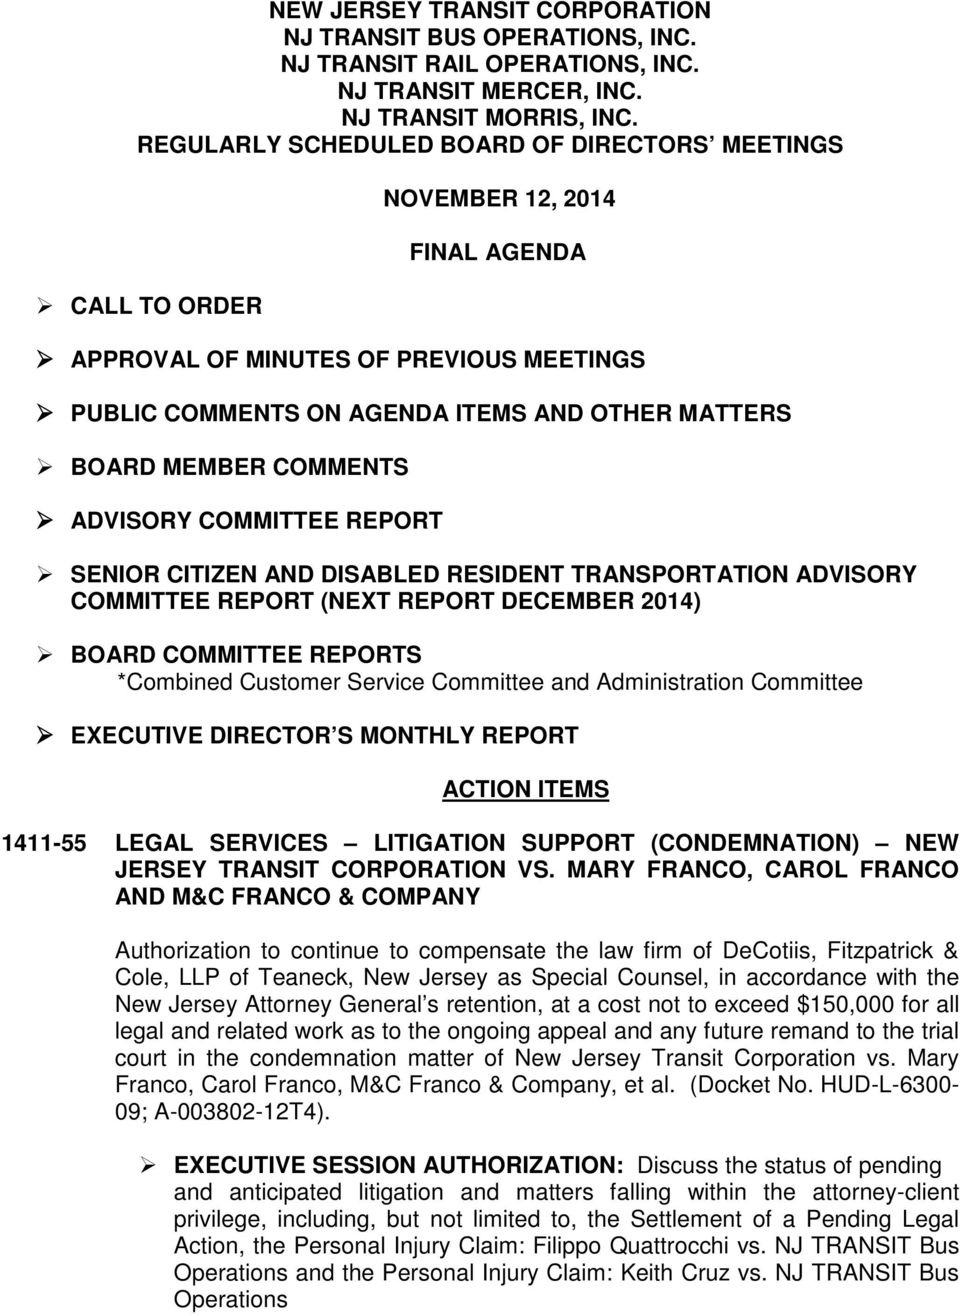 COMMENTS ADVISORY COMMITTEE REPORT SENIOR CITIZEN AND DISABLED RESIDENT TRANSPORTATION ADVISORY COMMITTEE REPORT (NEXT REPORT DECEMBER 2014) BOARD COMMITTEE REPORTS *Combined Customer Service